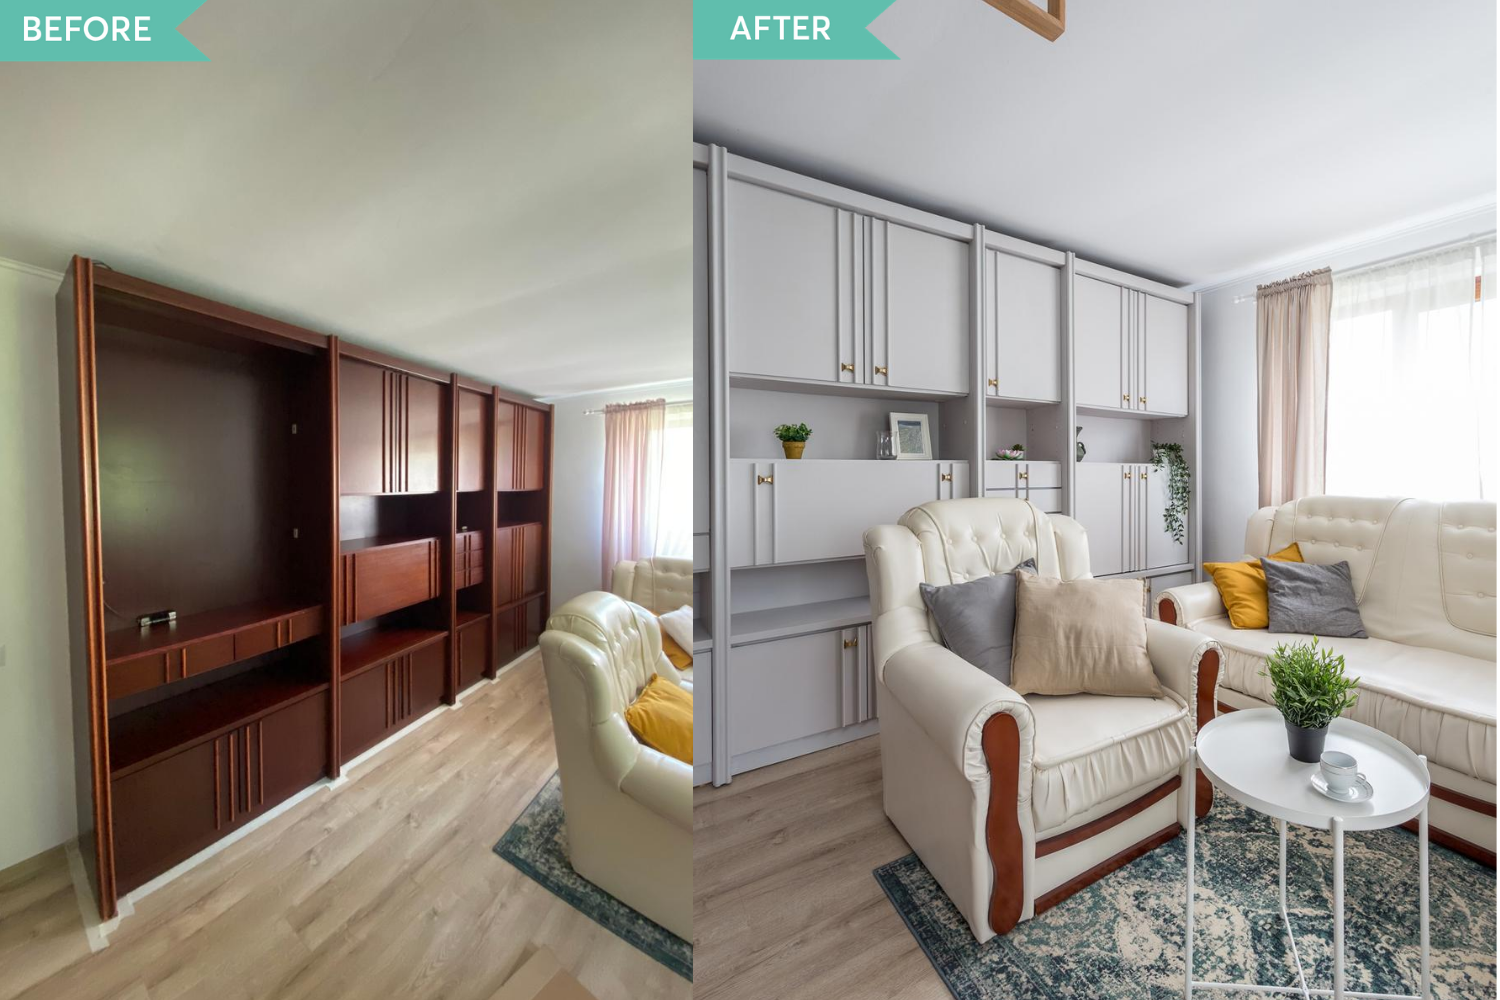 Zen Casa Comarnic - before and after - amenajare AfterDeco (11)